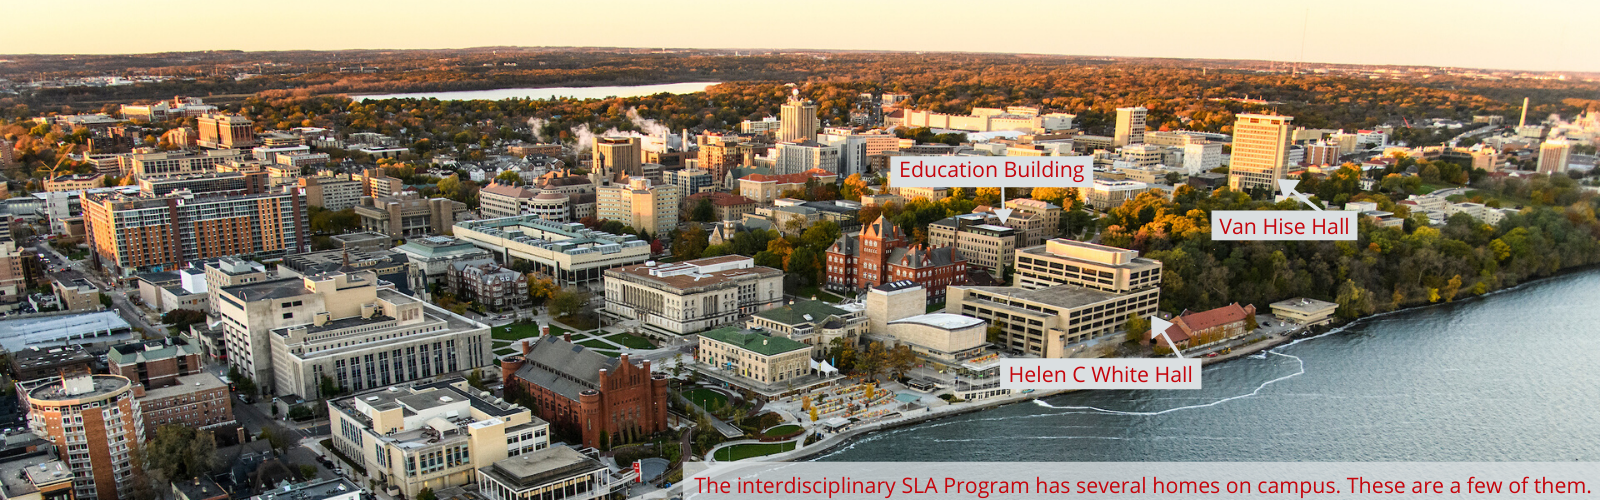 aerial view of campus facing southwest